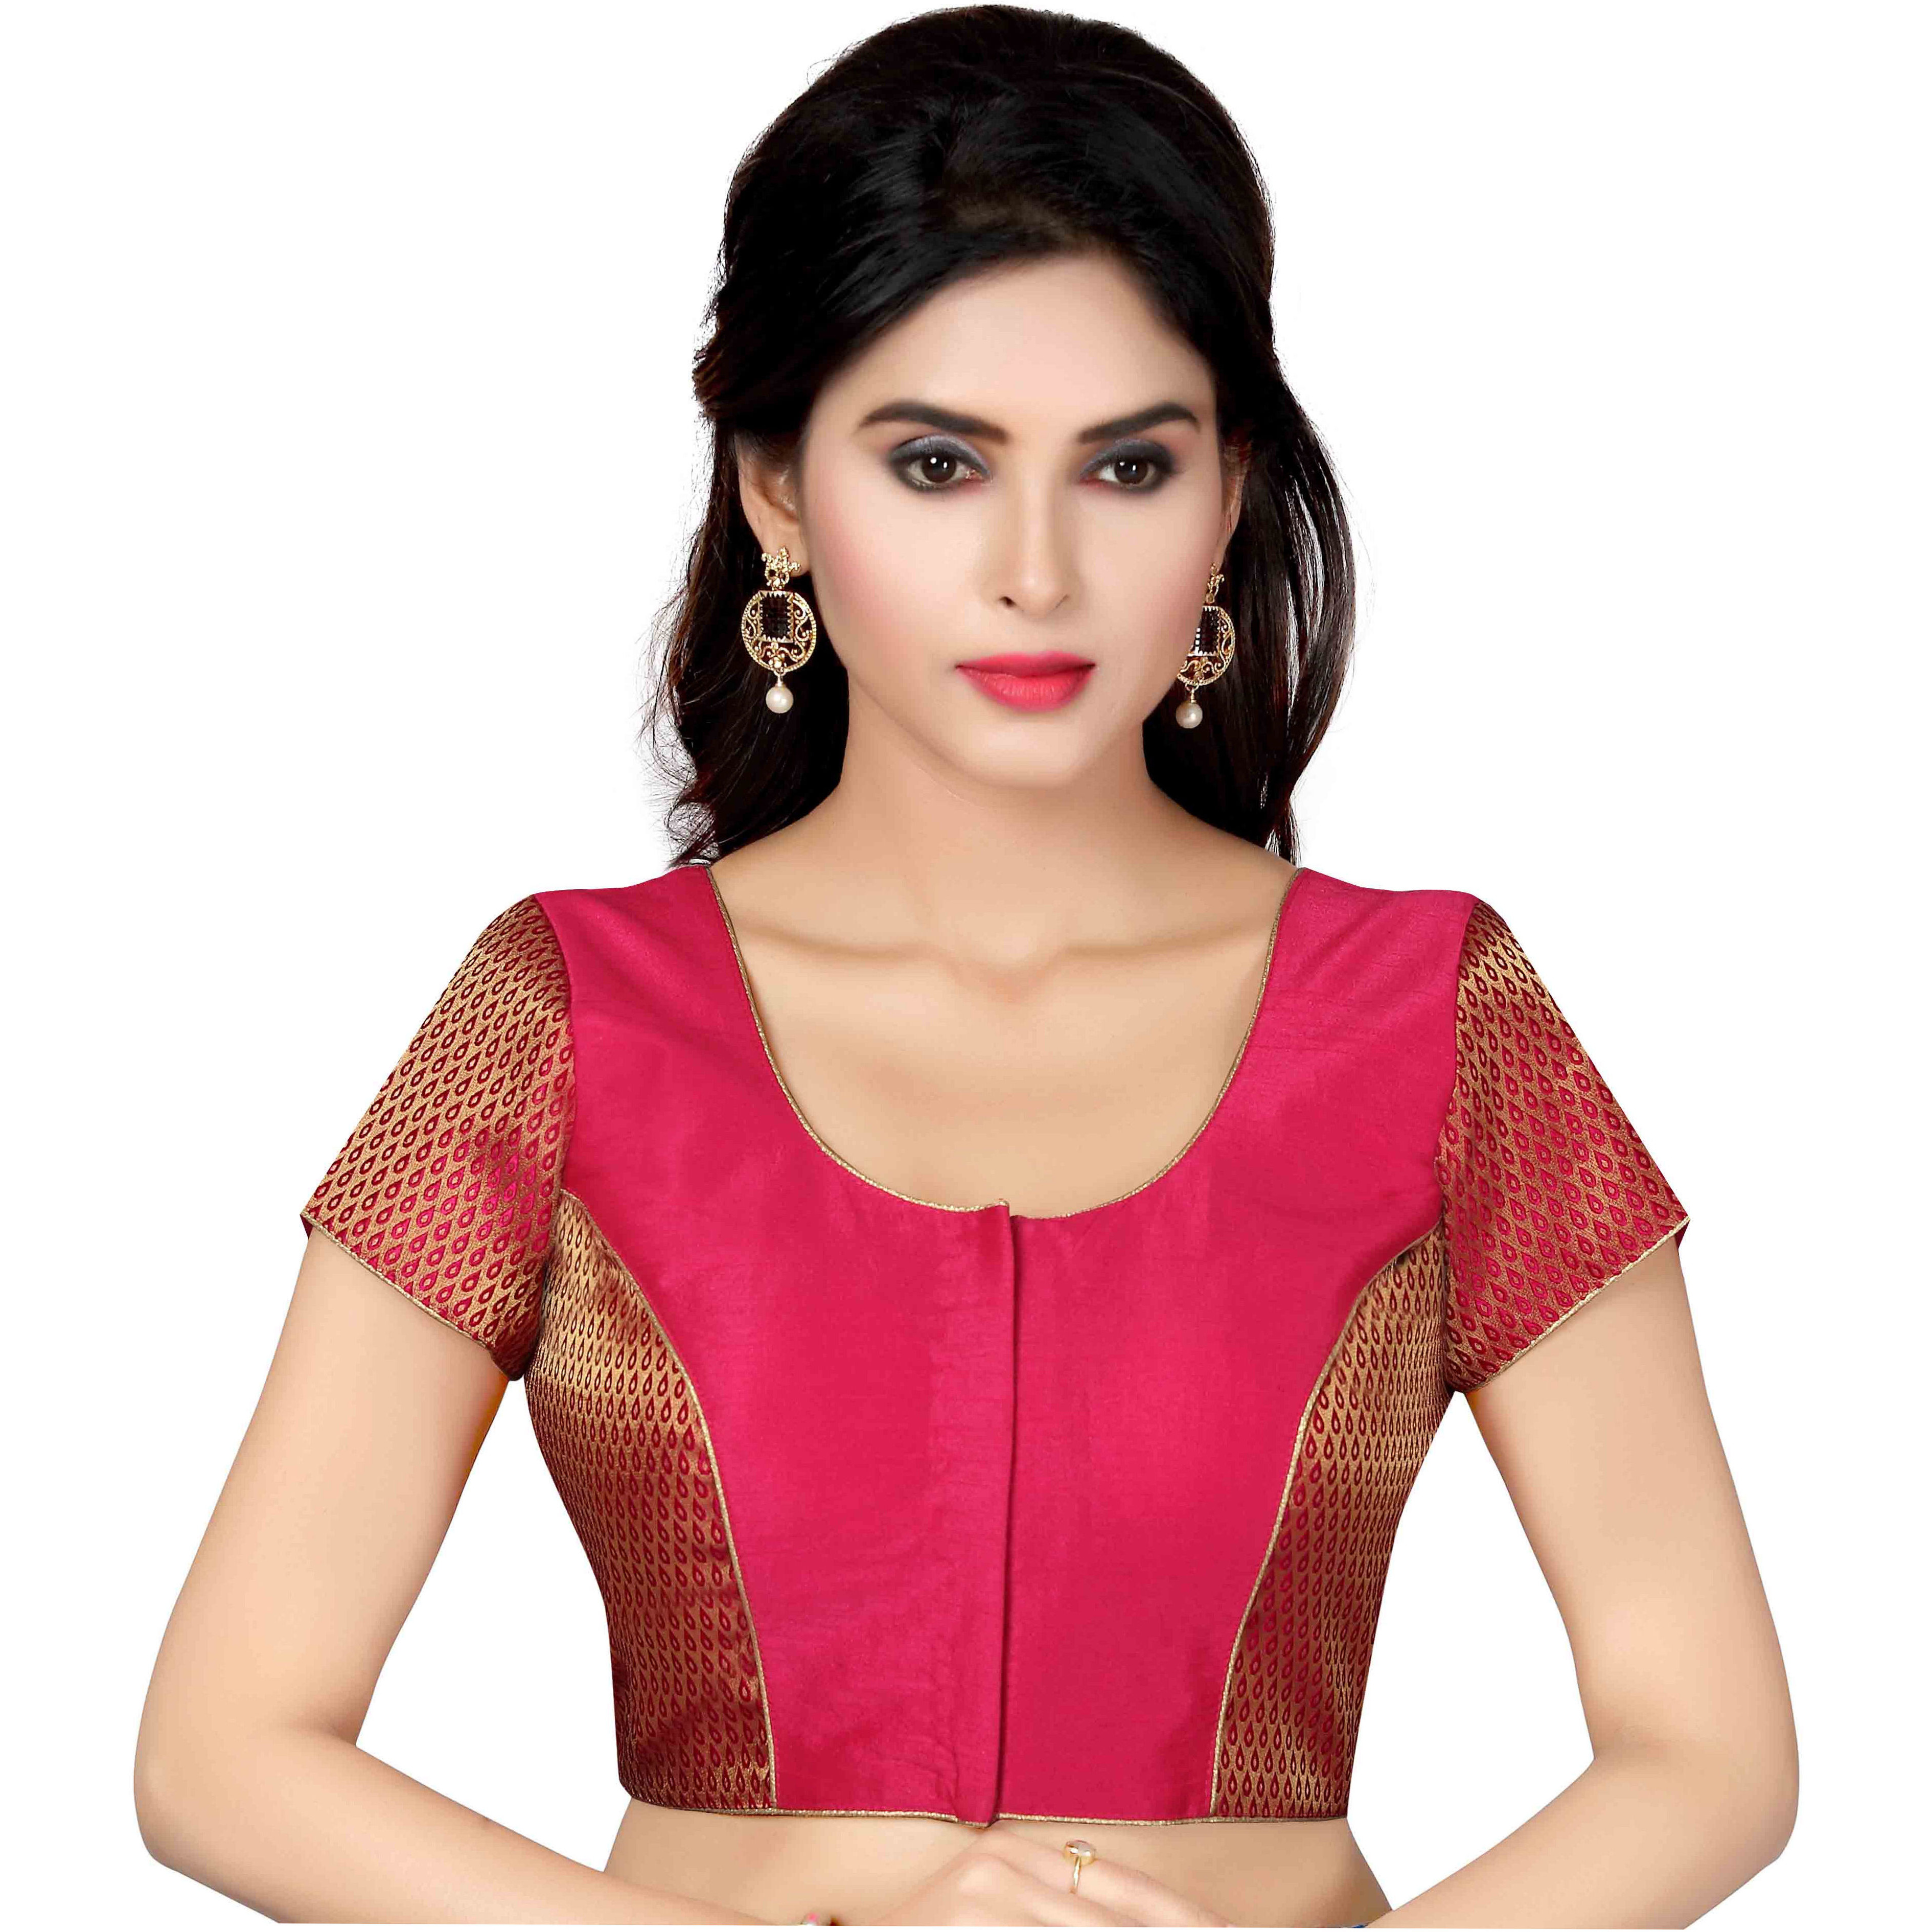 TrendyFashionMall Ready Made Designer Art Silk Saree Blouse Collection! (Color:PINK, Size:SMALL - 38)